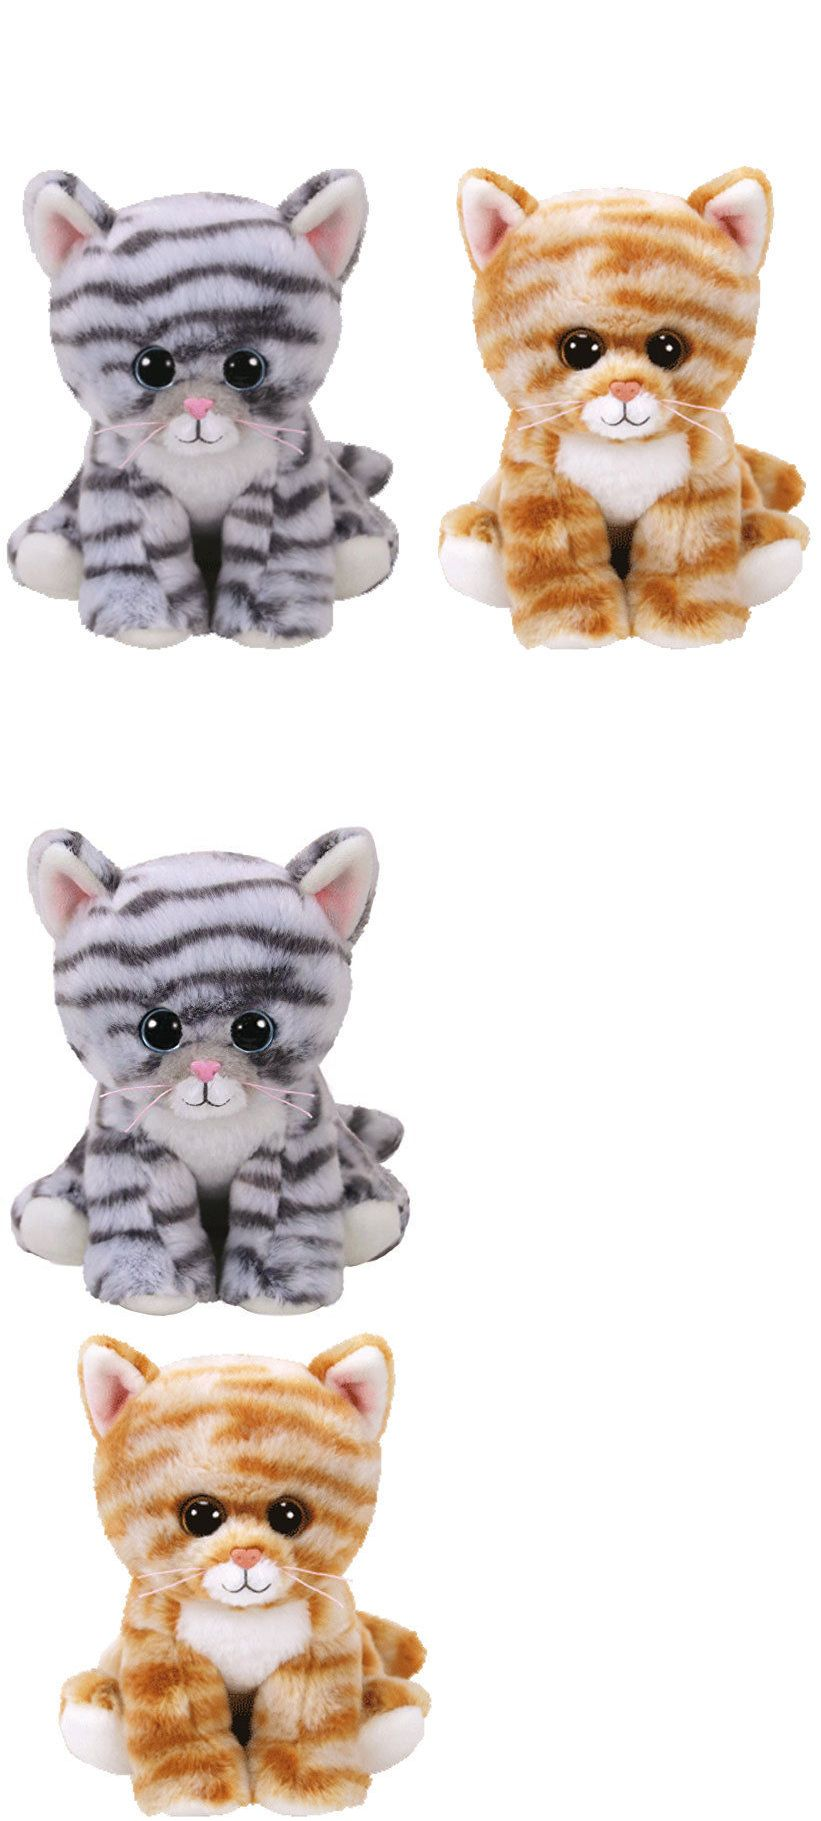 Current 165959  Set Of 2 Ty Beanie Baby 6 Millie And Cleo Tabby Cat Plush W  Mwmt S Ty Heart Tags -  BUY IT NOW ONLY   13.95 on eBay! c762f08899bb